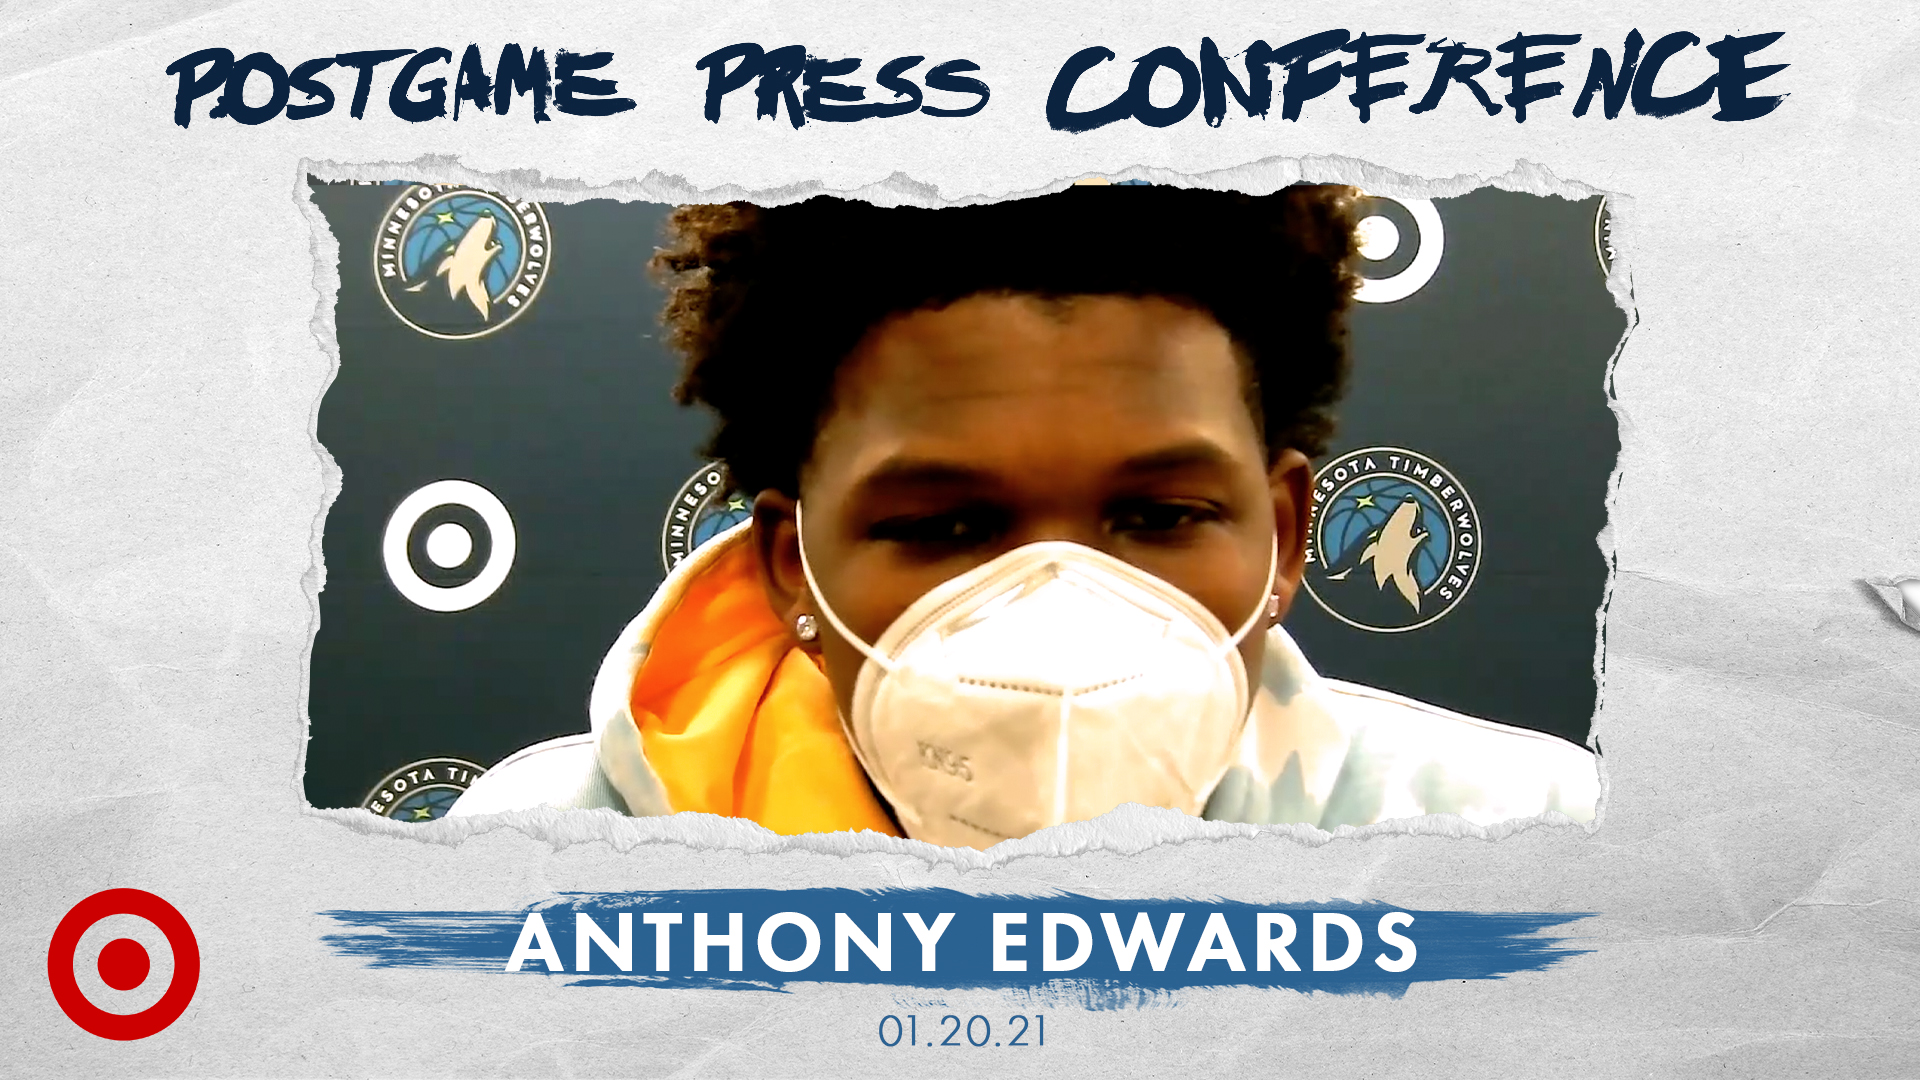 Anthony Edwards Postgame Press Conference - January 20, 2021